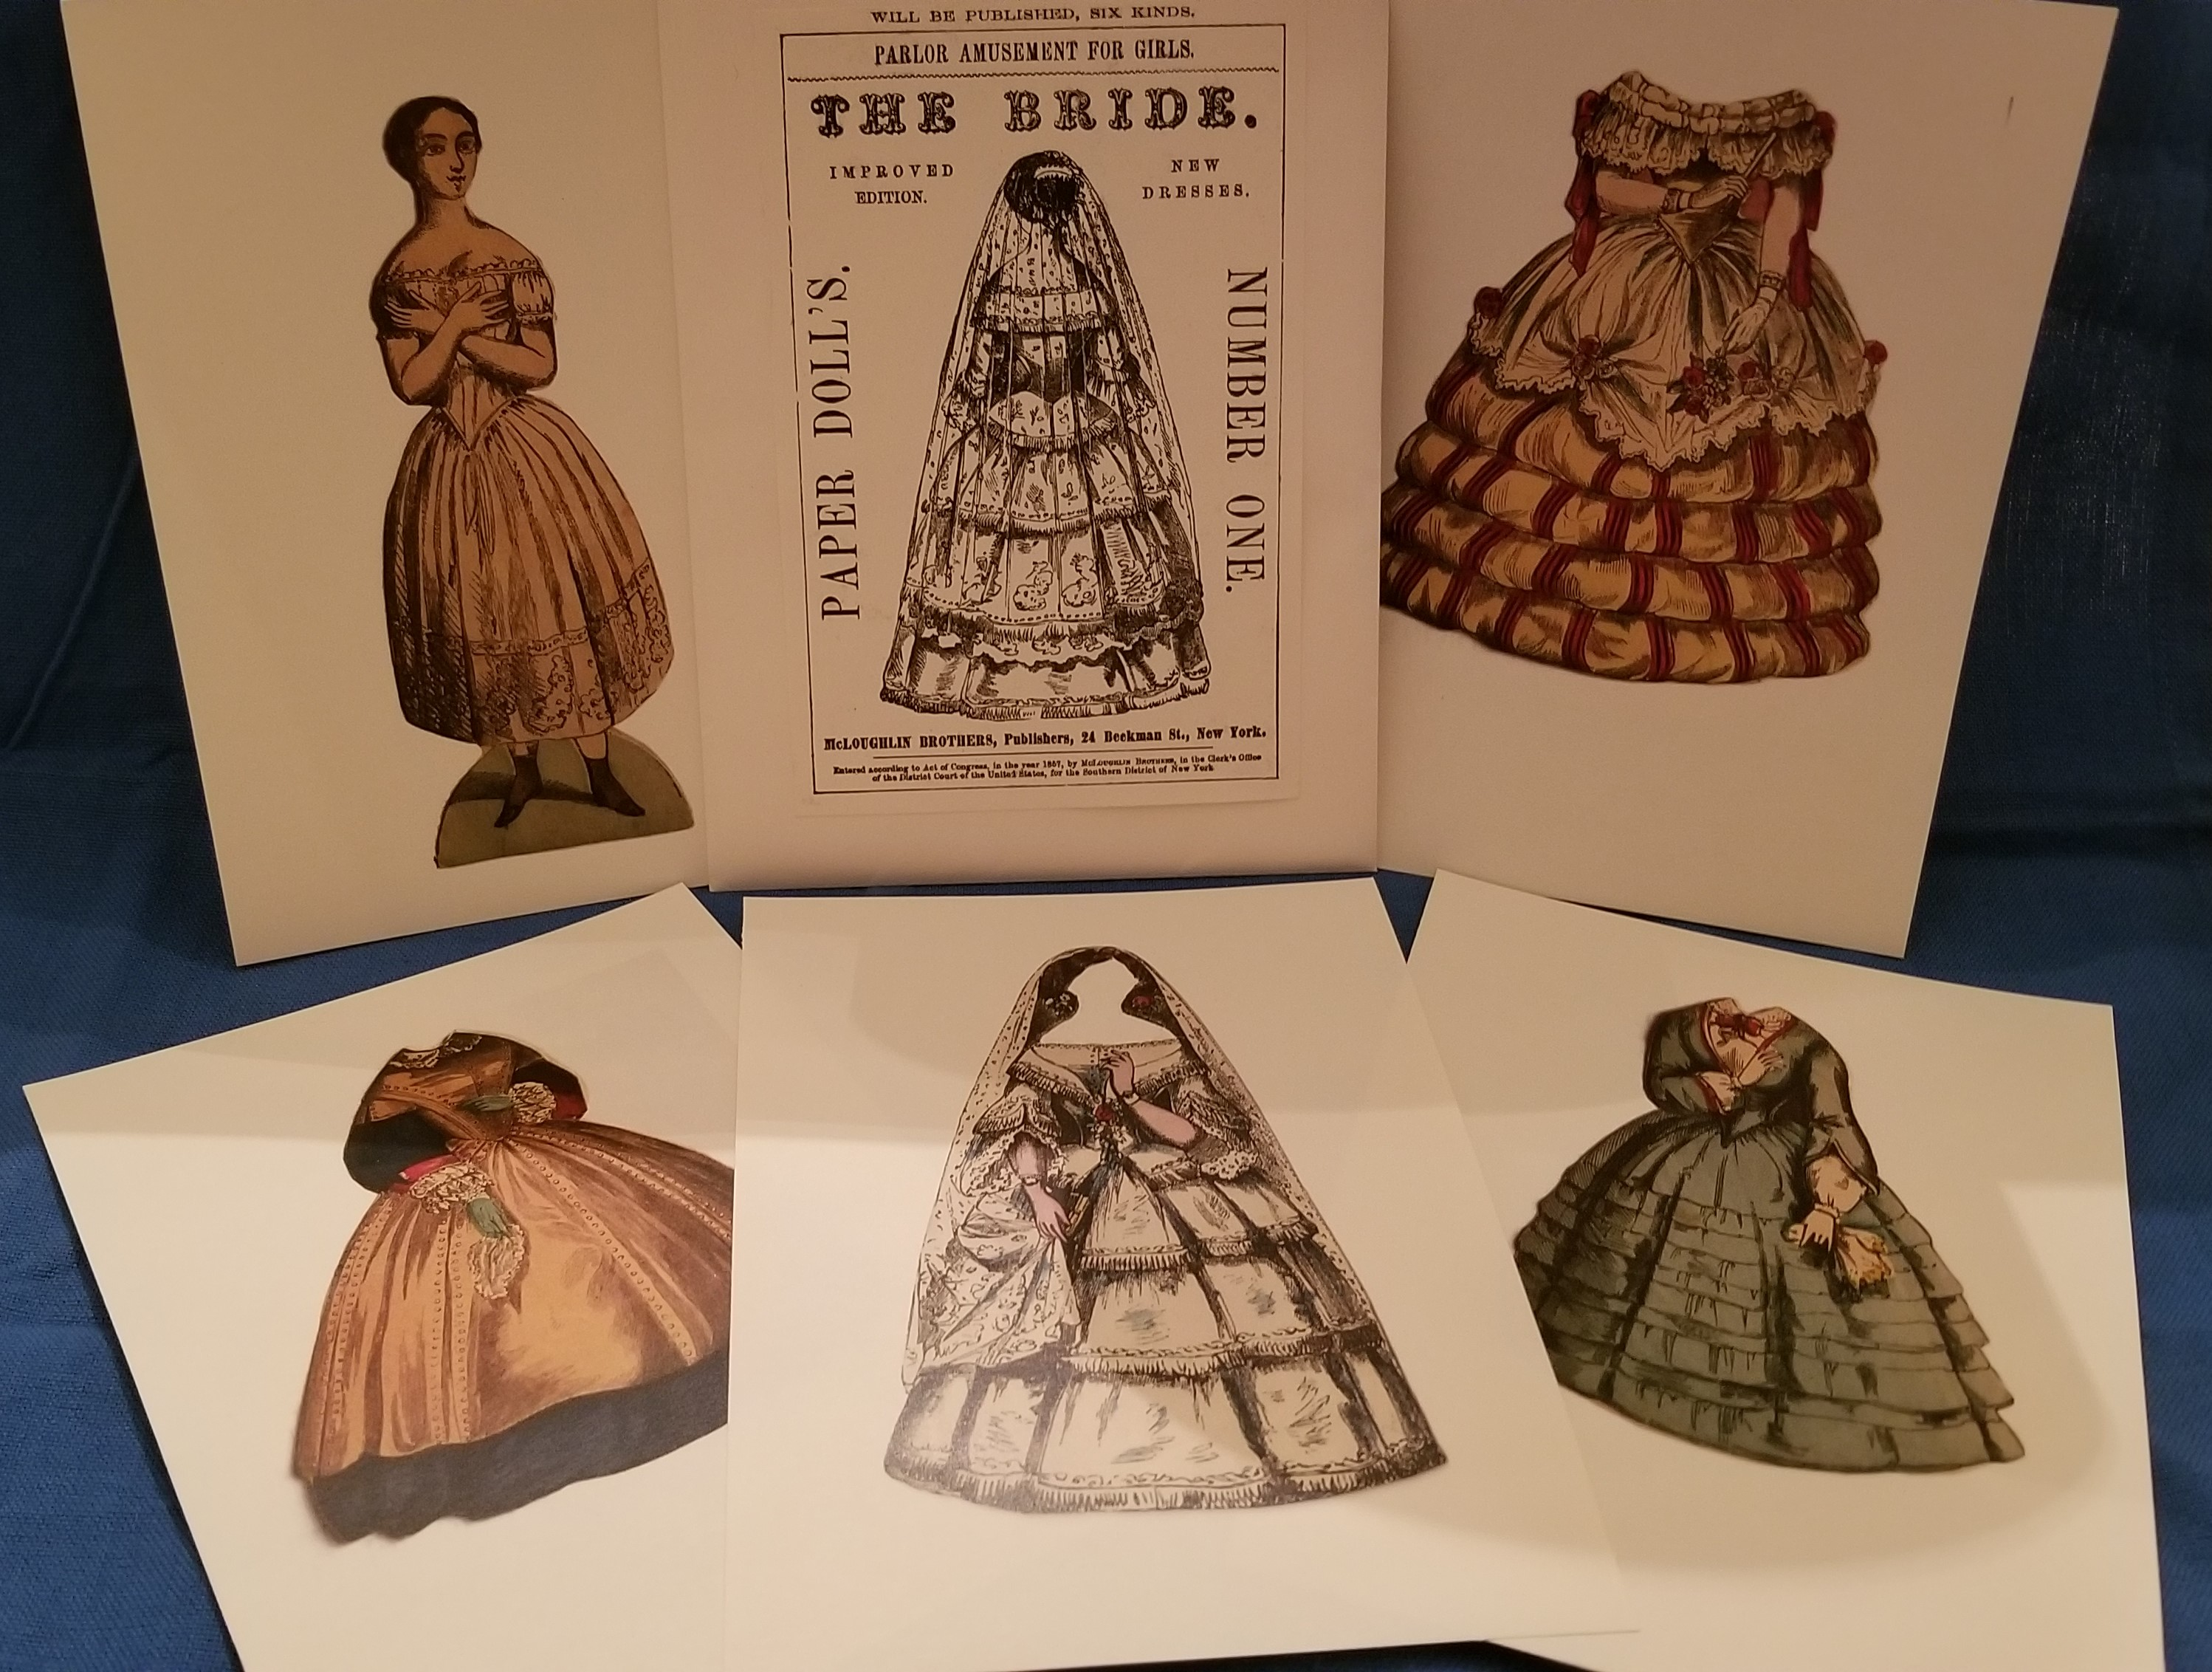 Paper Dolls from 1857